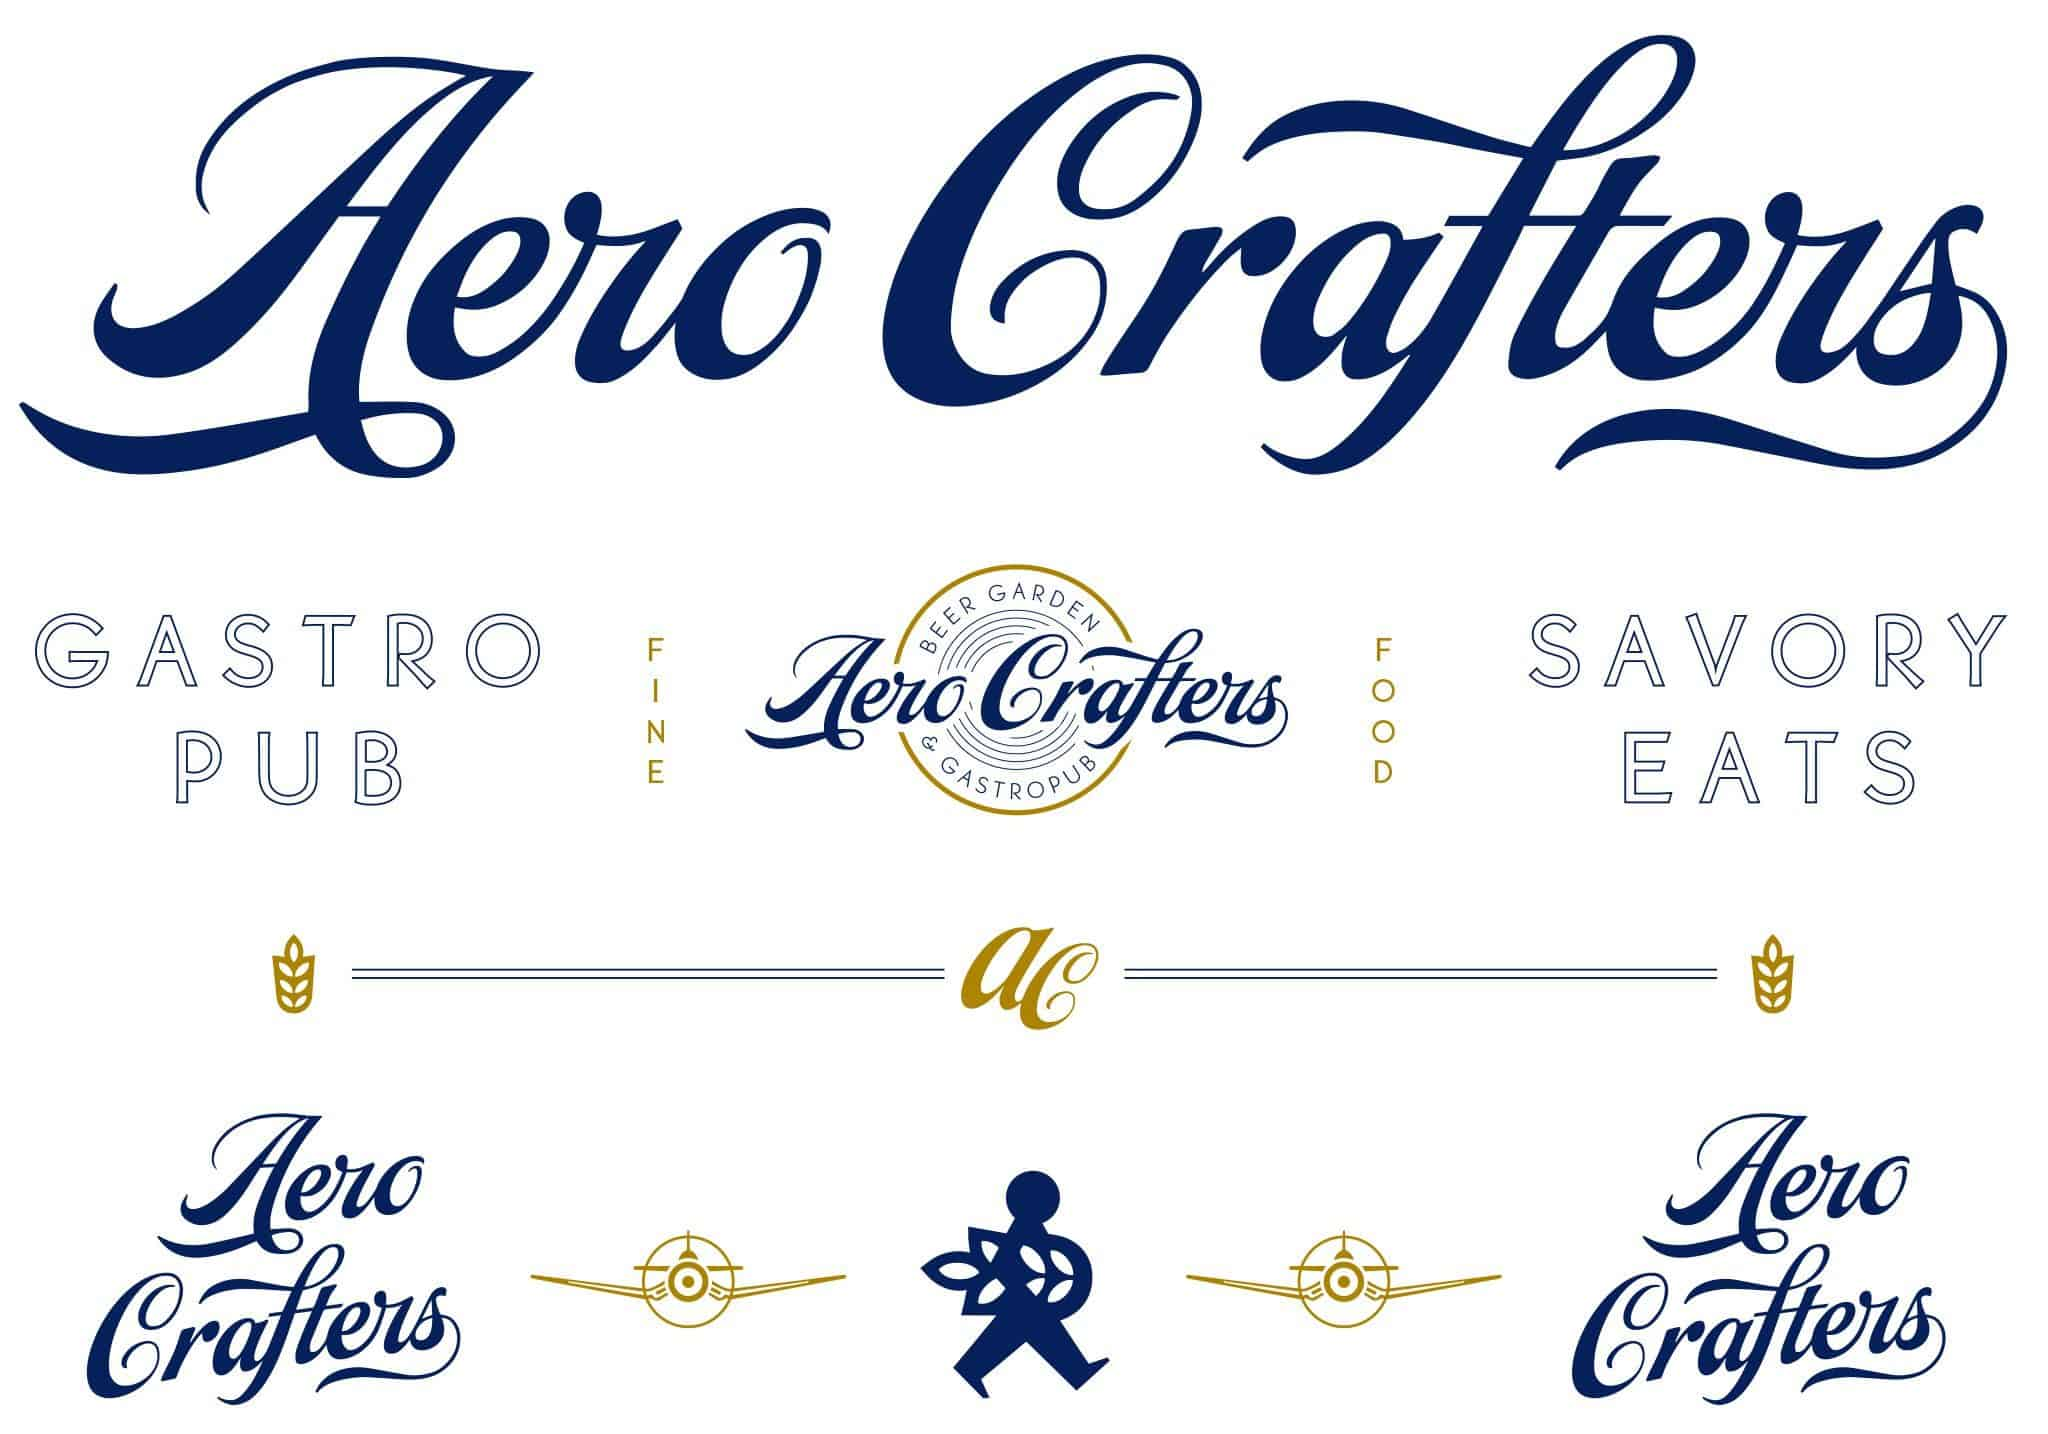 Logo Marks | Brand development, signage, and graphic design for Aero Crafters Beer Garden & Gastropub, Victoria, Texas | Field of Study: A Design & Branding Consultancy.